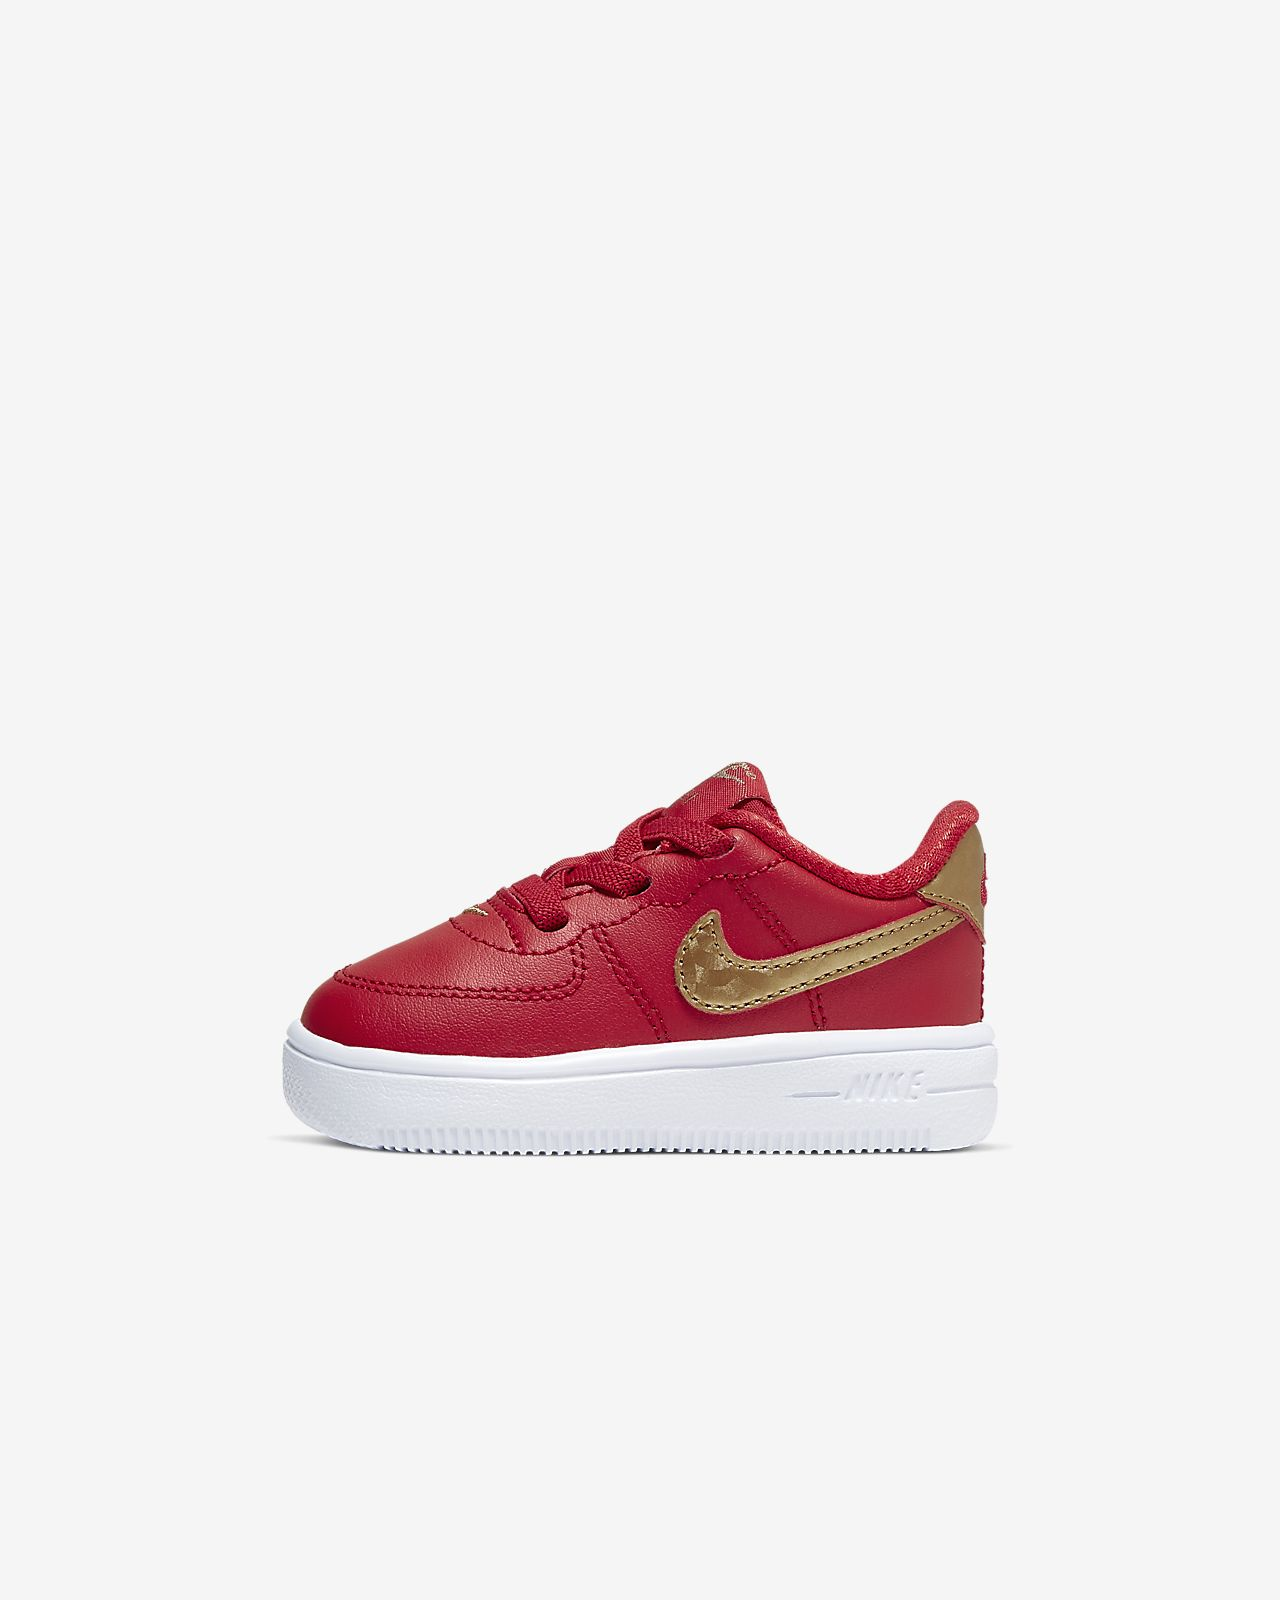 Nike Force 1 '18 Zapatillas - Bebé e infantil